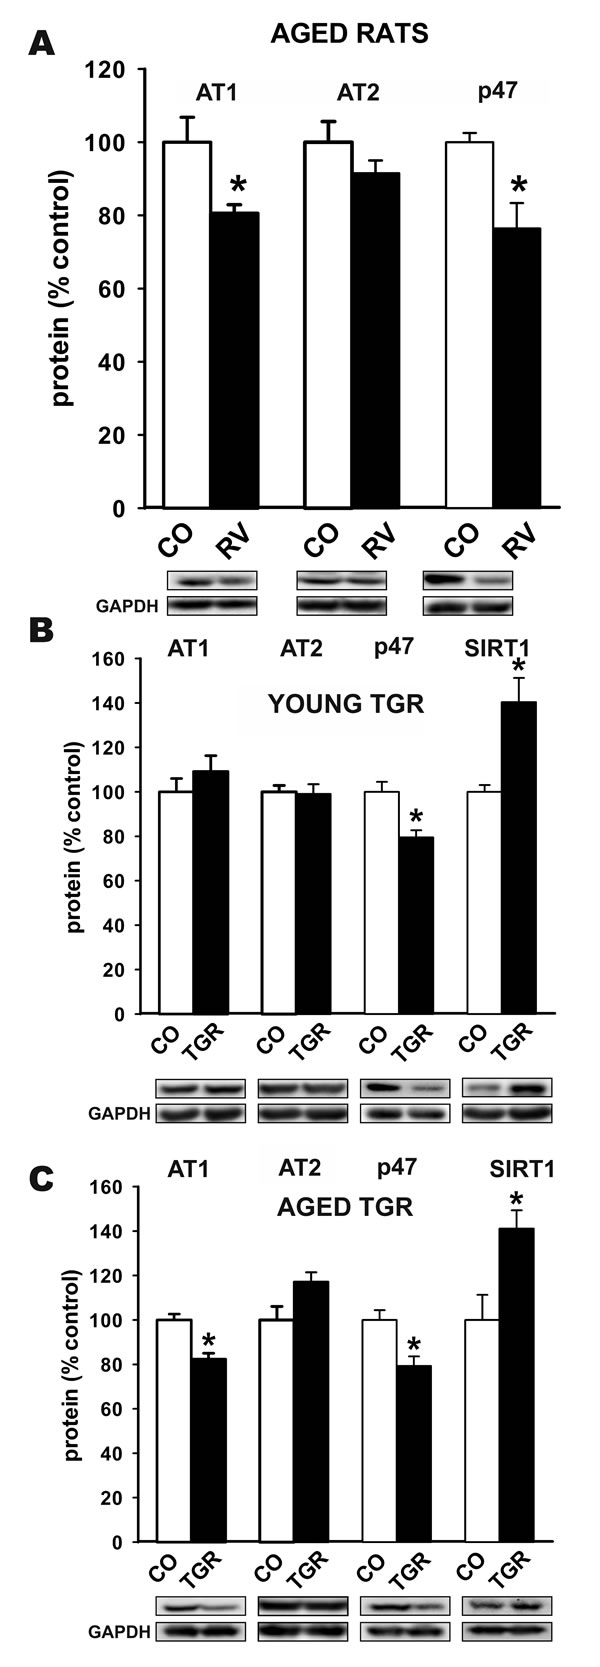 Western blot analysis of changes in the expression of angiotensin receptors (AT1 and AT2) and NADPH-oxidase activation